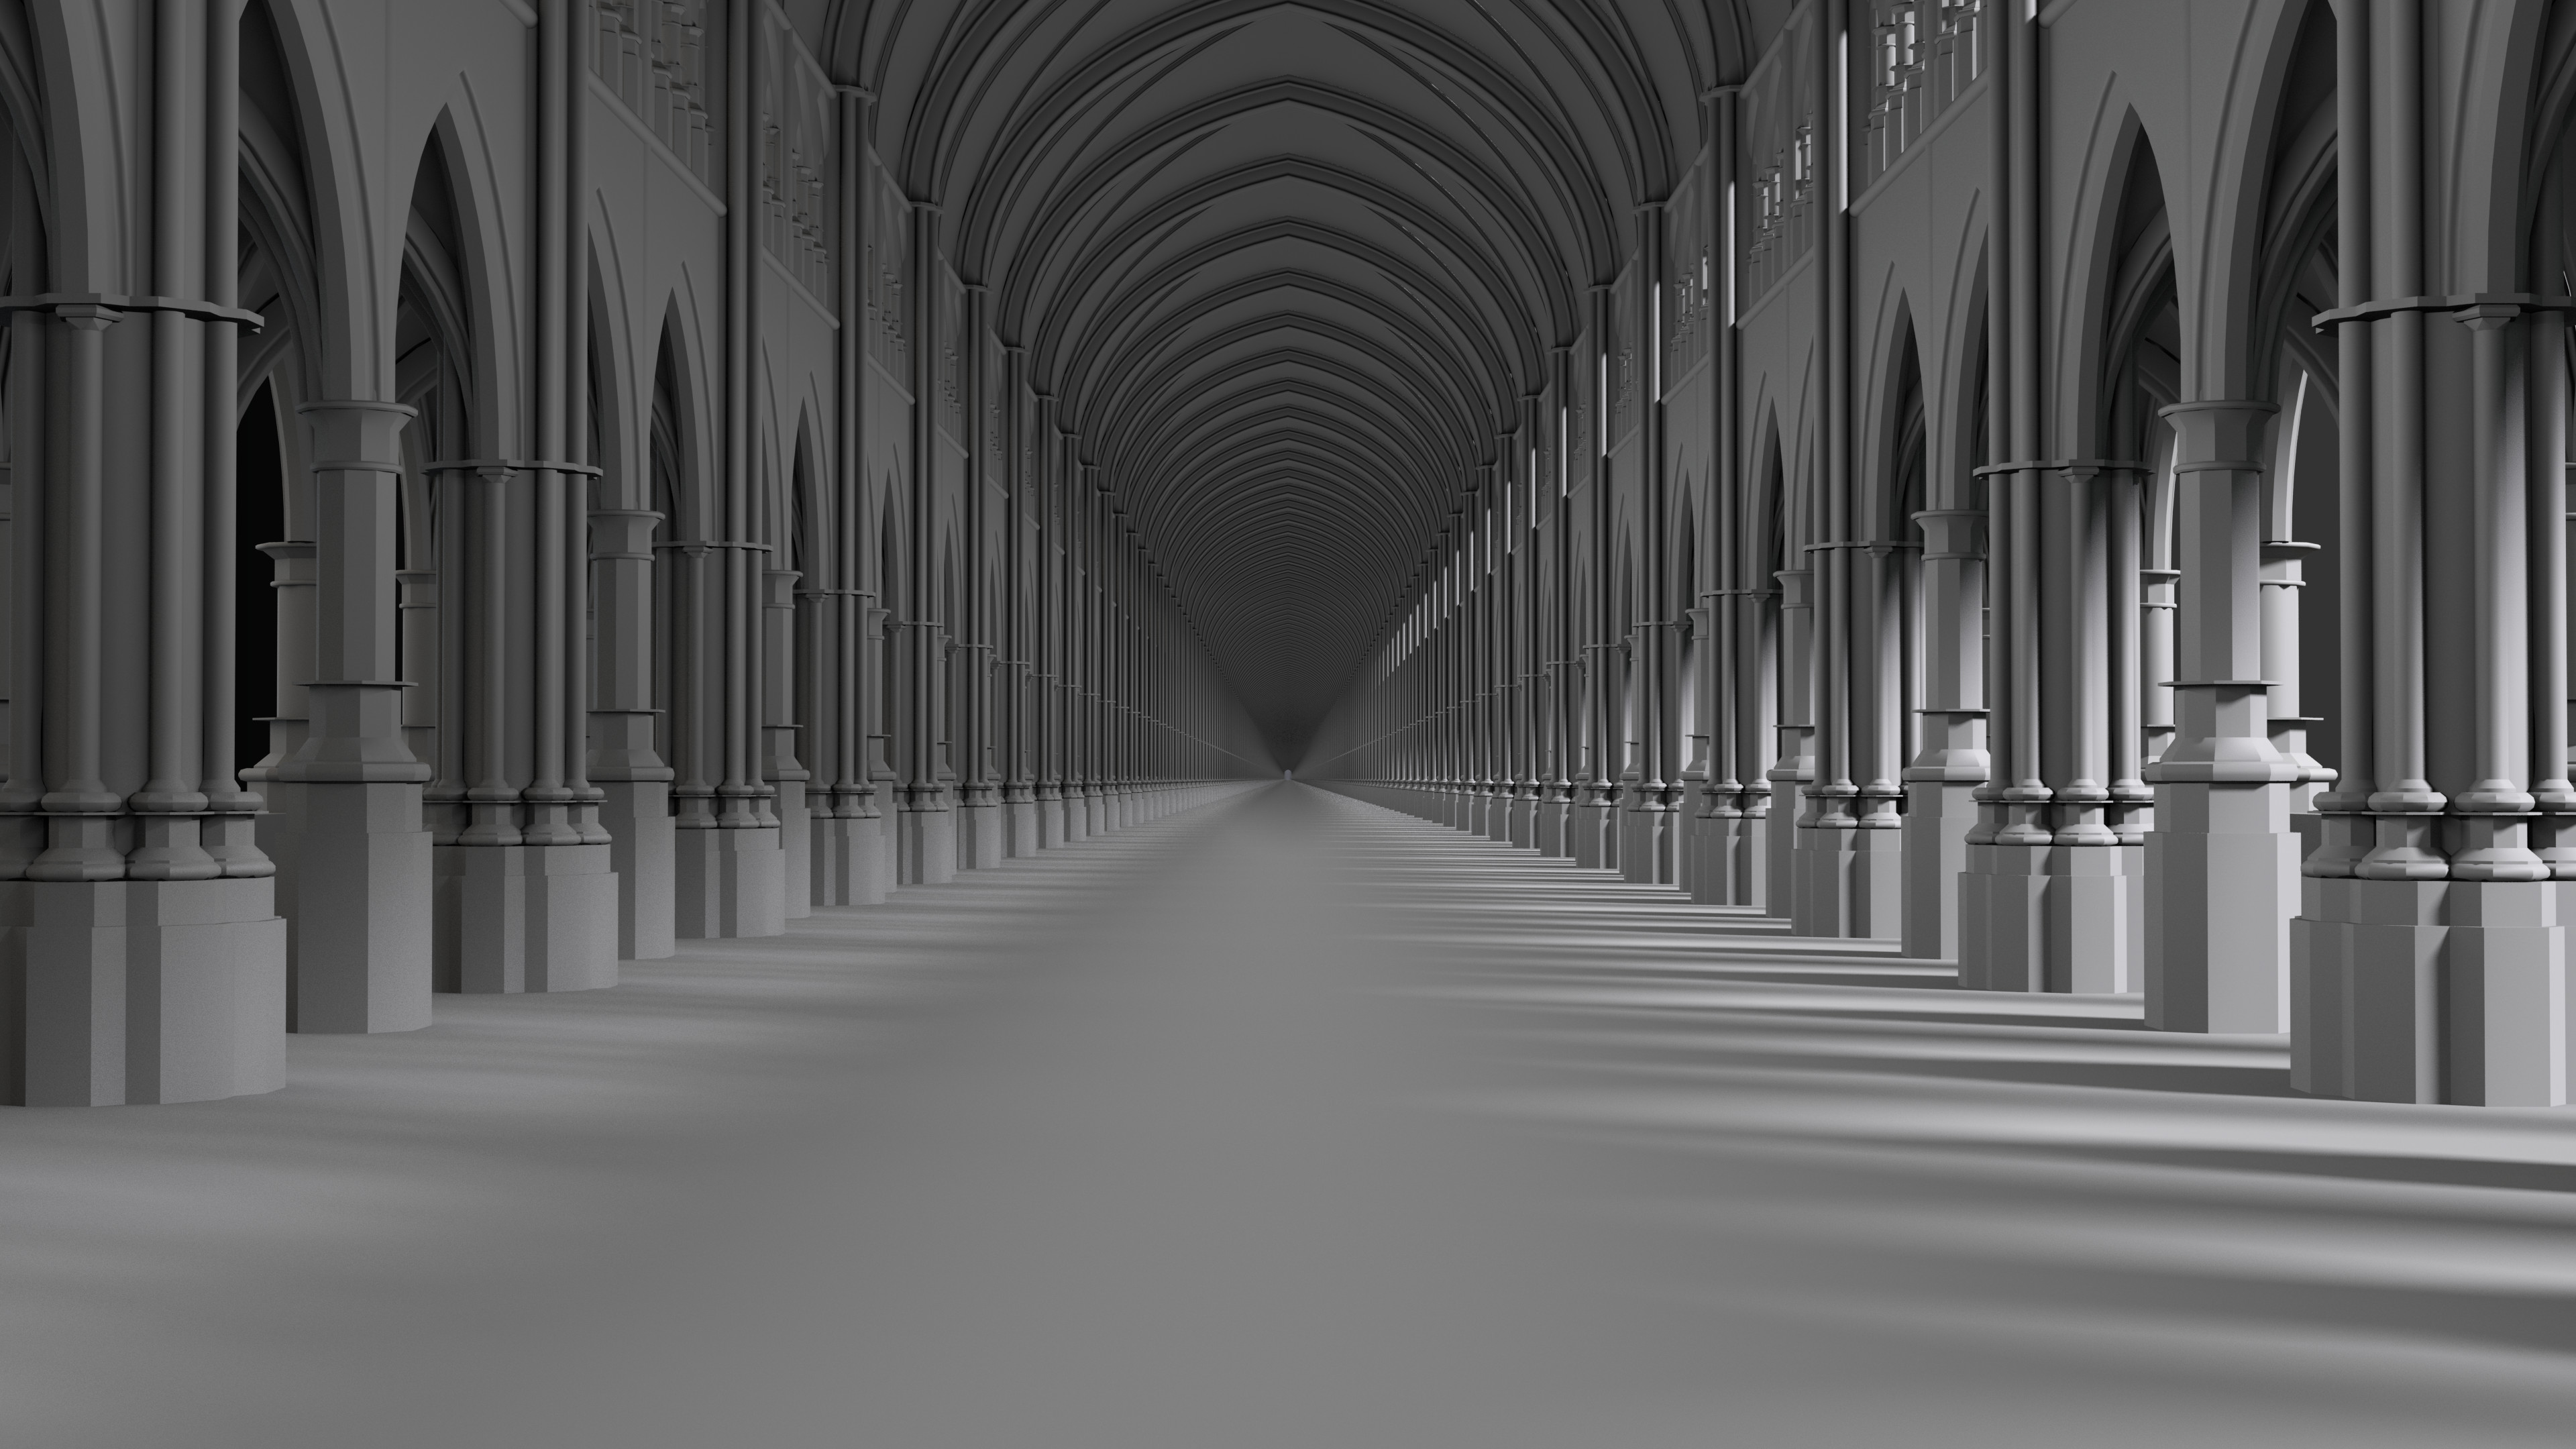 Never ending, gothic architecture proceduralized (CGtrader awards entry)